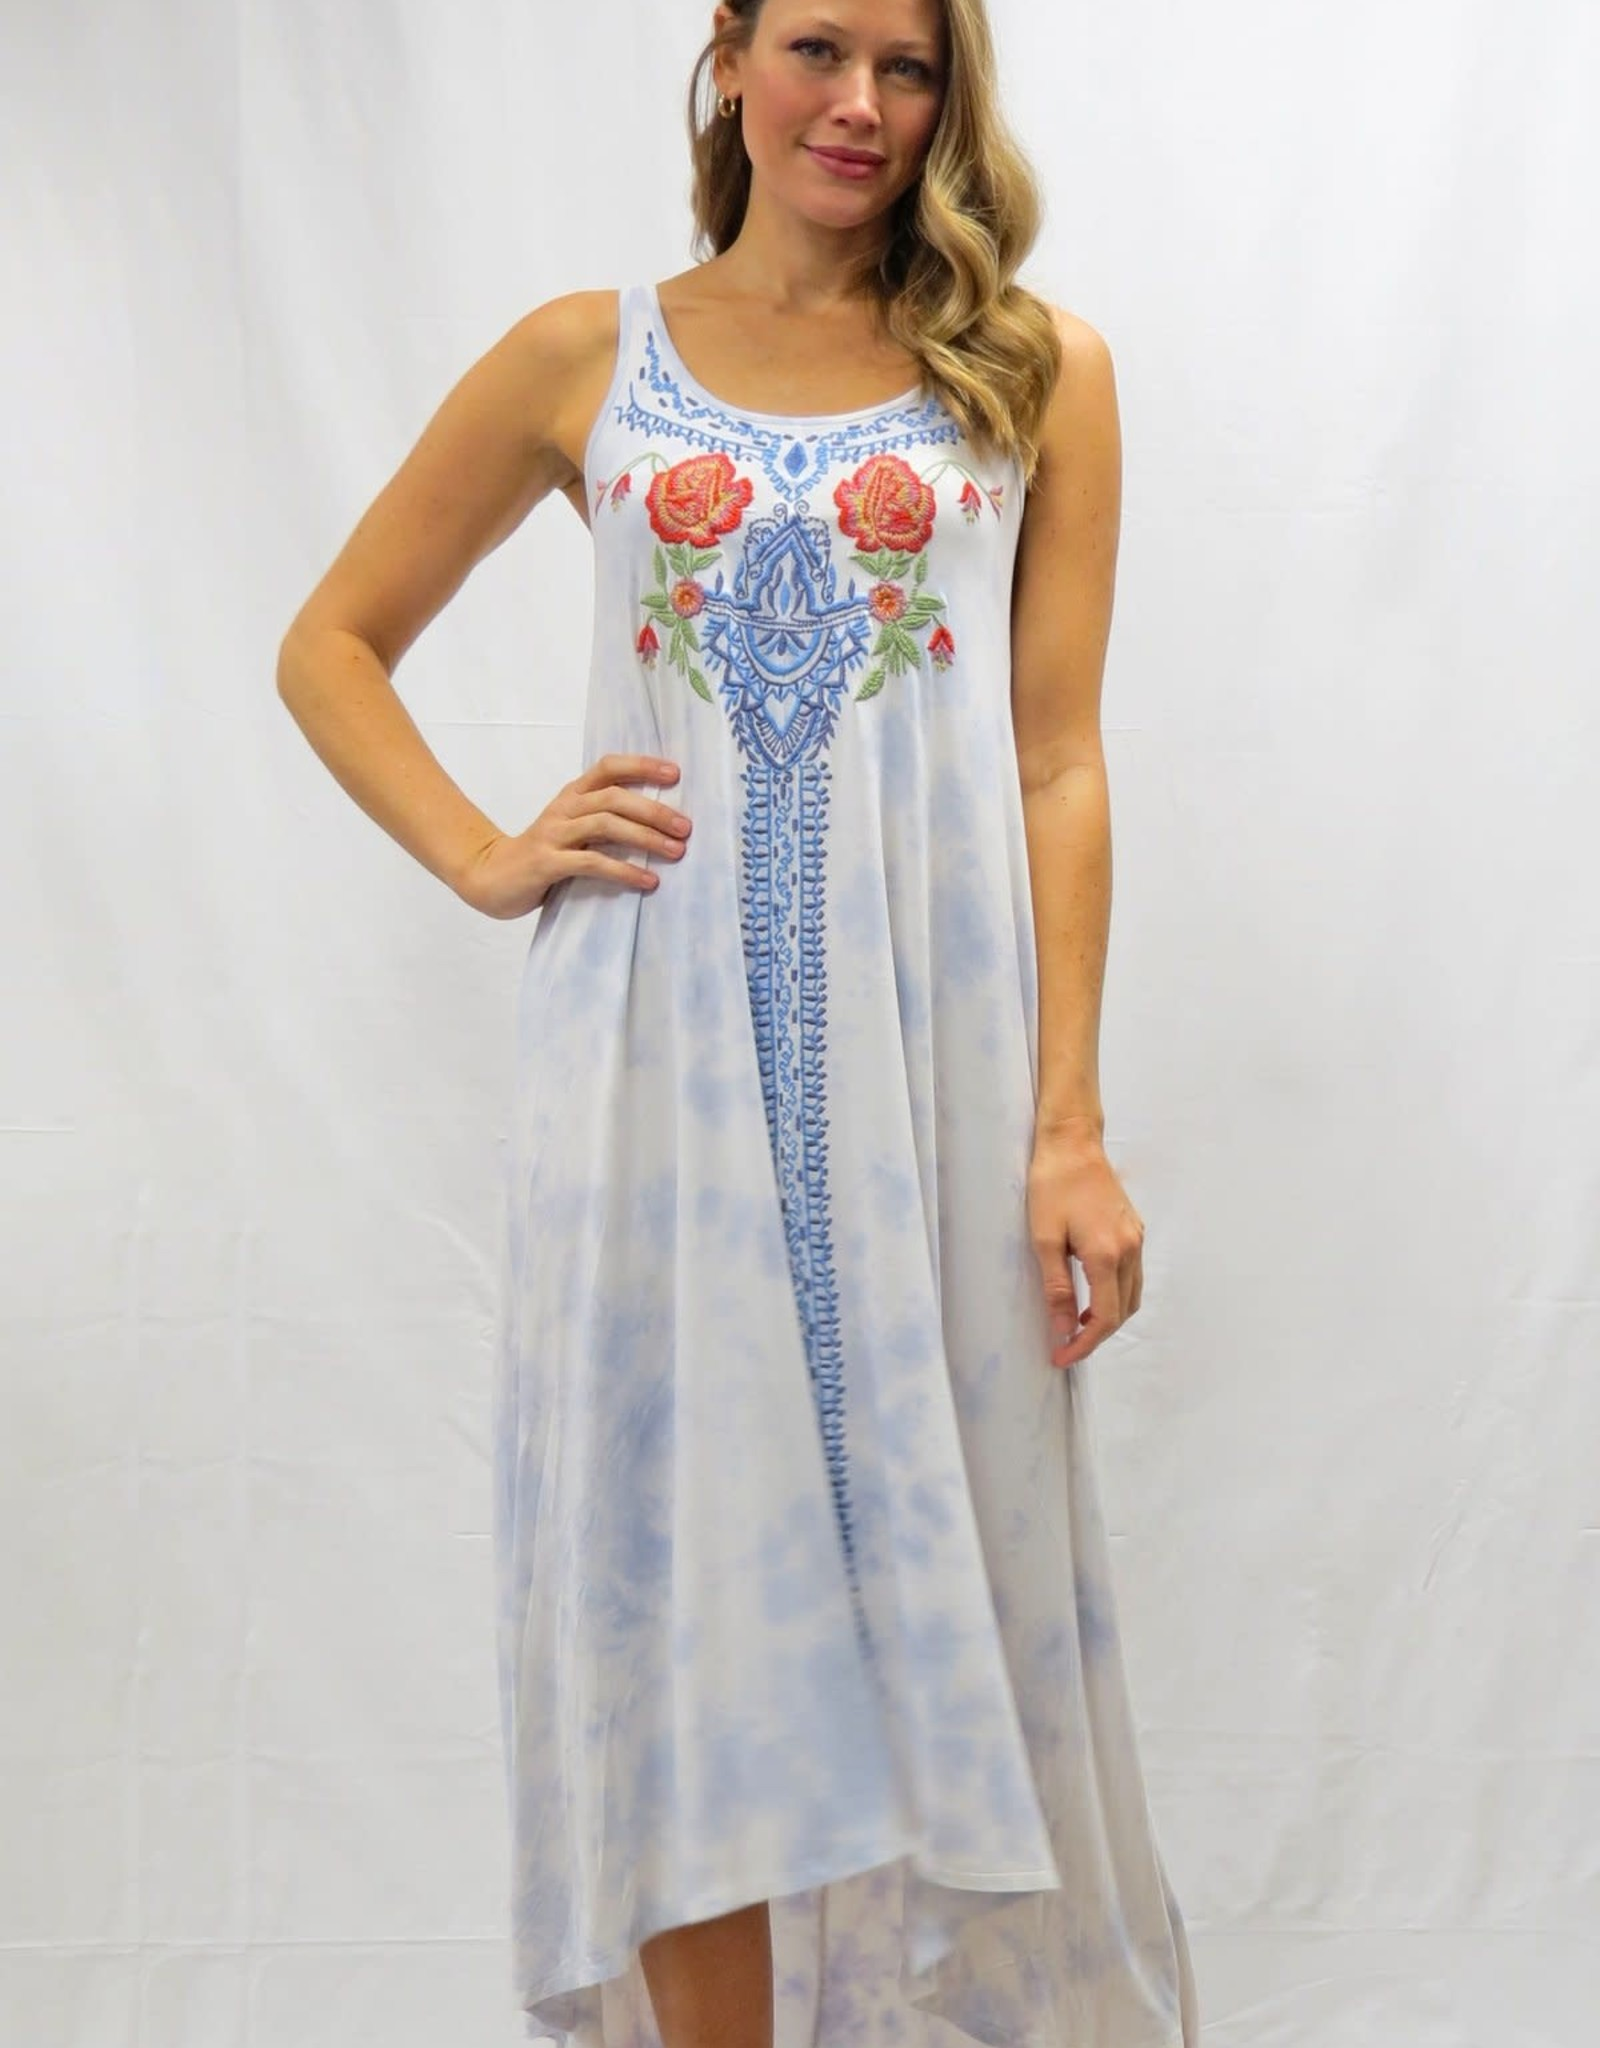 Caite Mollie Embroidered Tank Dress